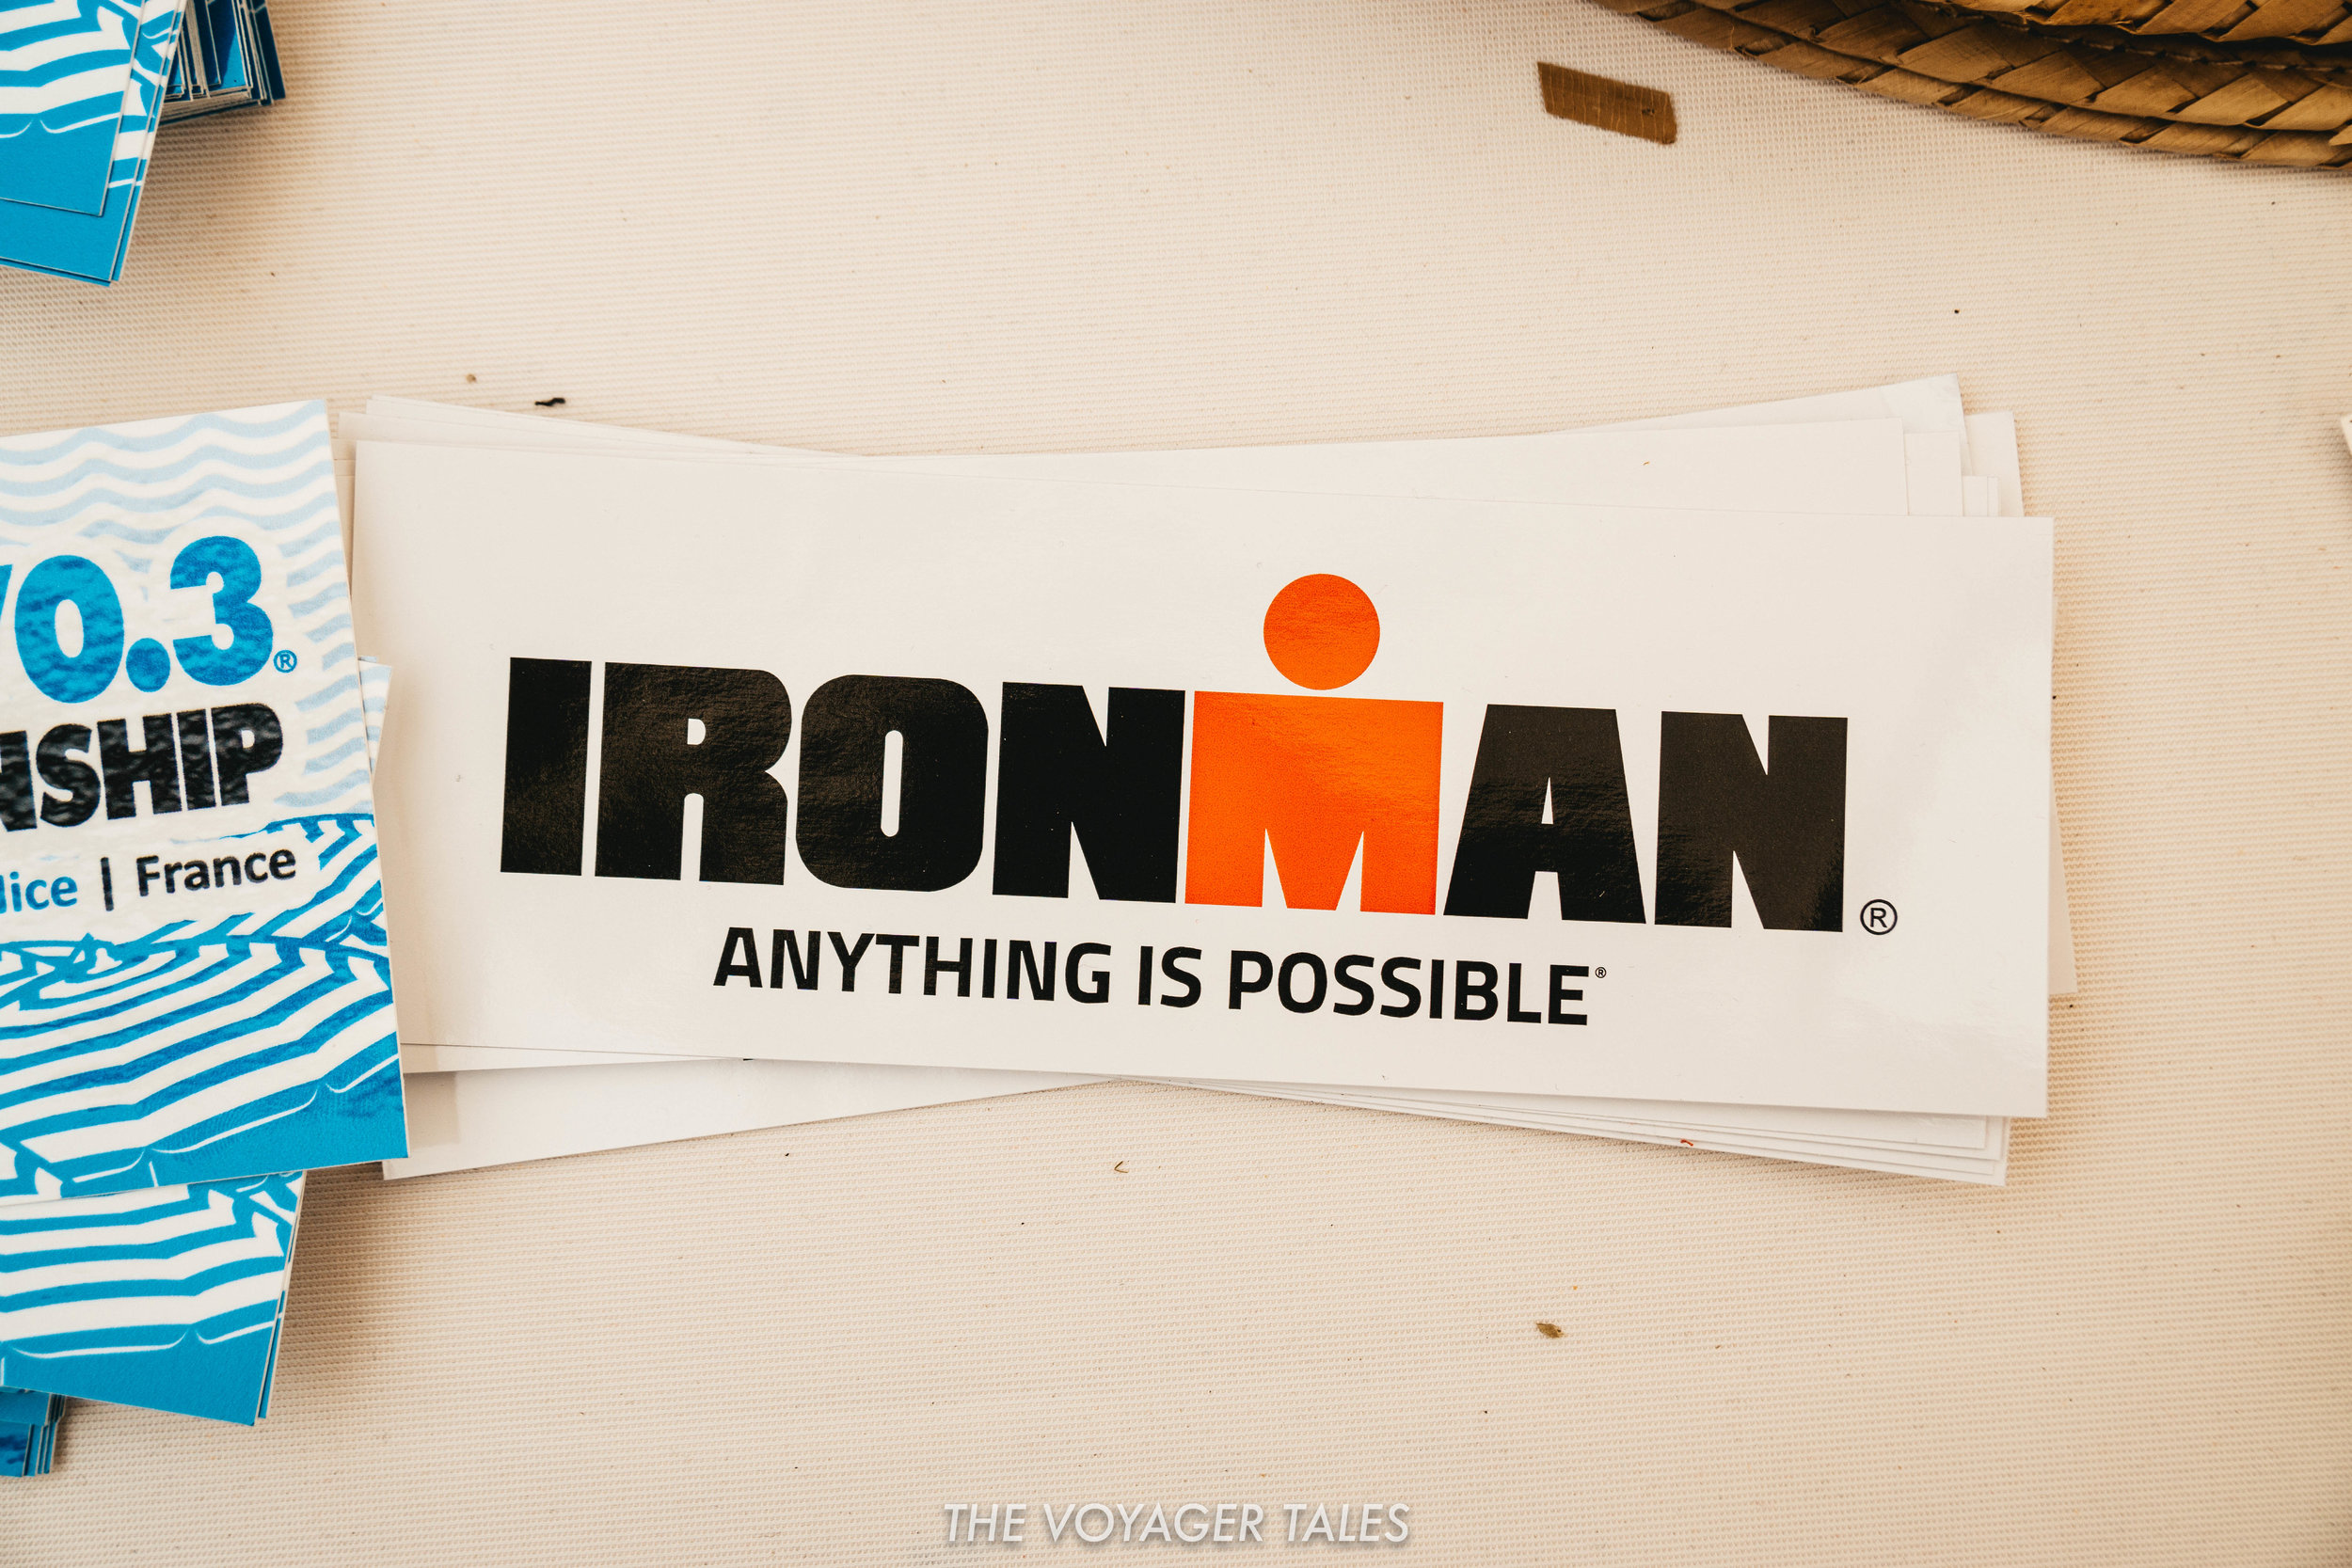 Ironman world championships, Nice